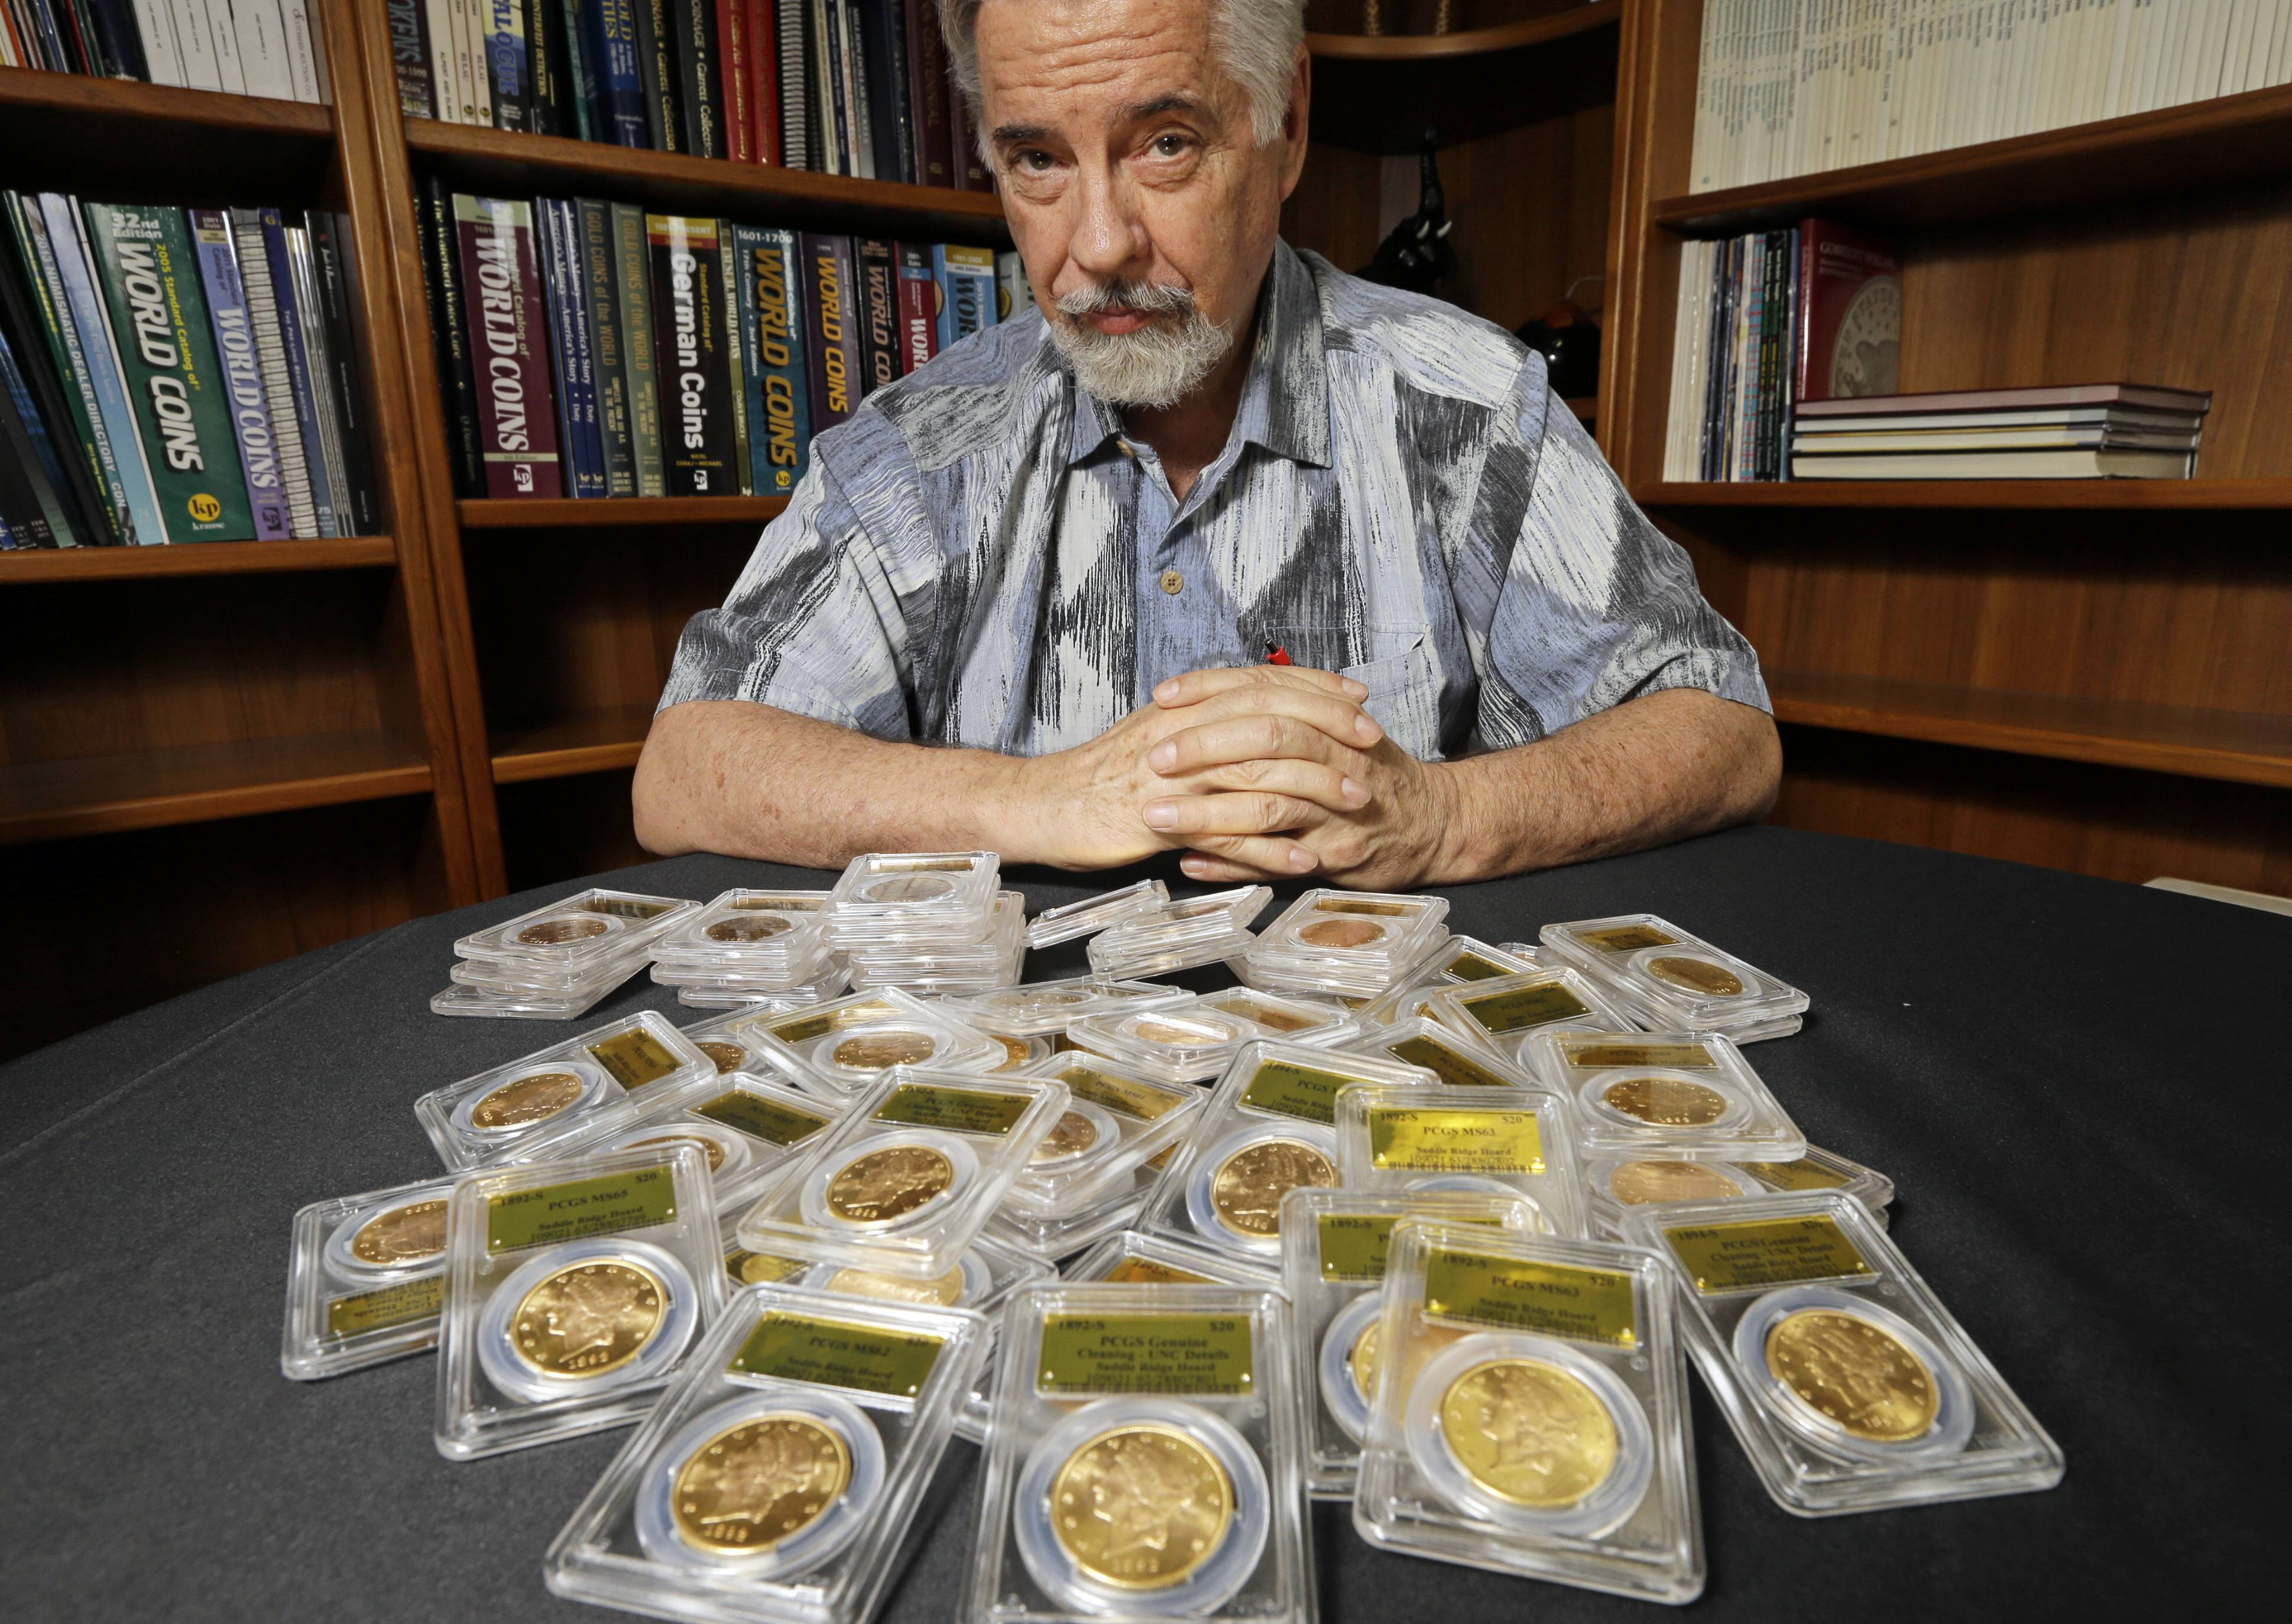 David Hall, co-founder of Professional Coin Grading Service, poses with some of 1,427 Gold-Rush era U.S. gold coins, at his office in Santa Ana, Calif. A California couple out walking their dog on their property stumbled across the modern-day bonanza.